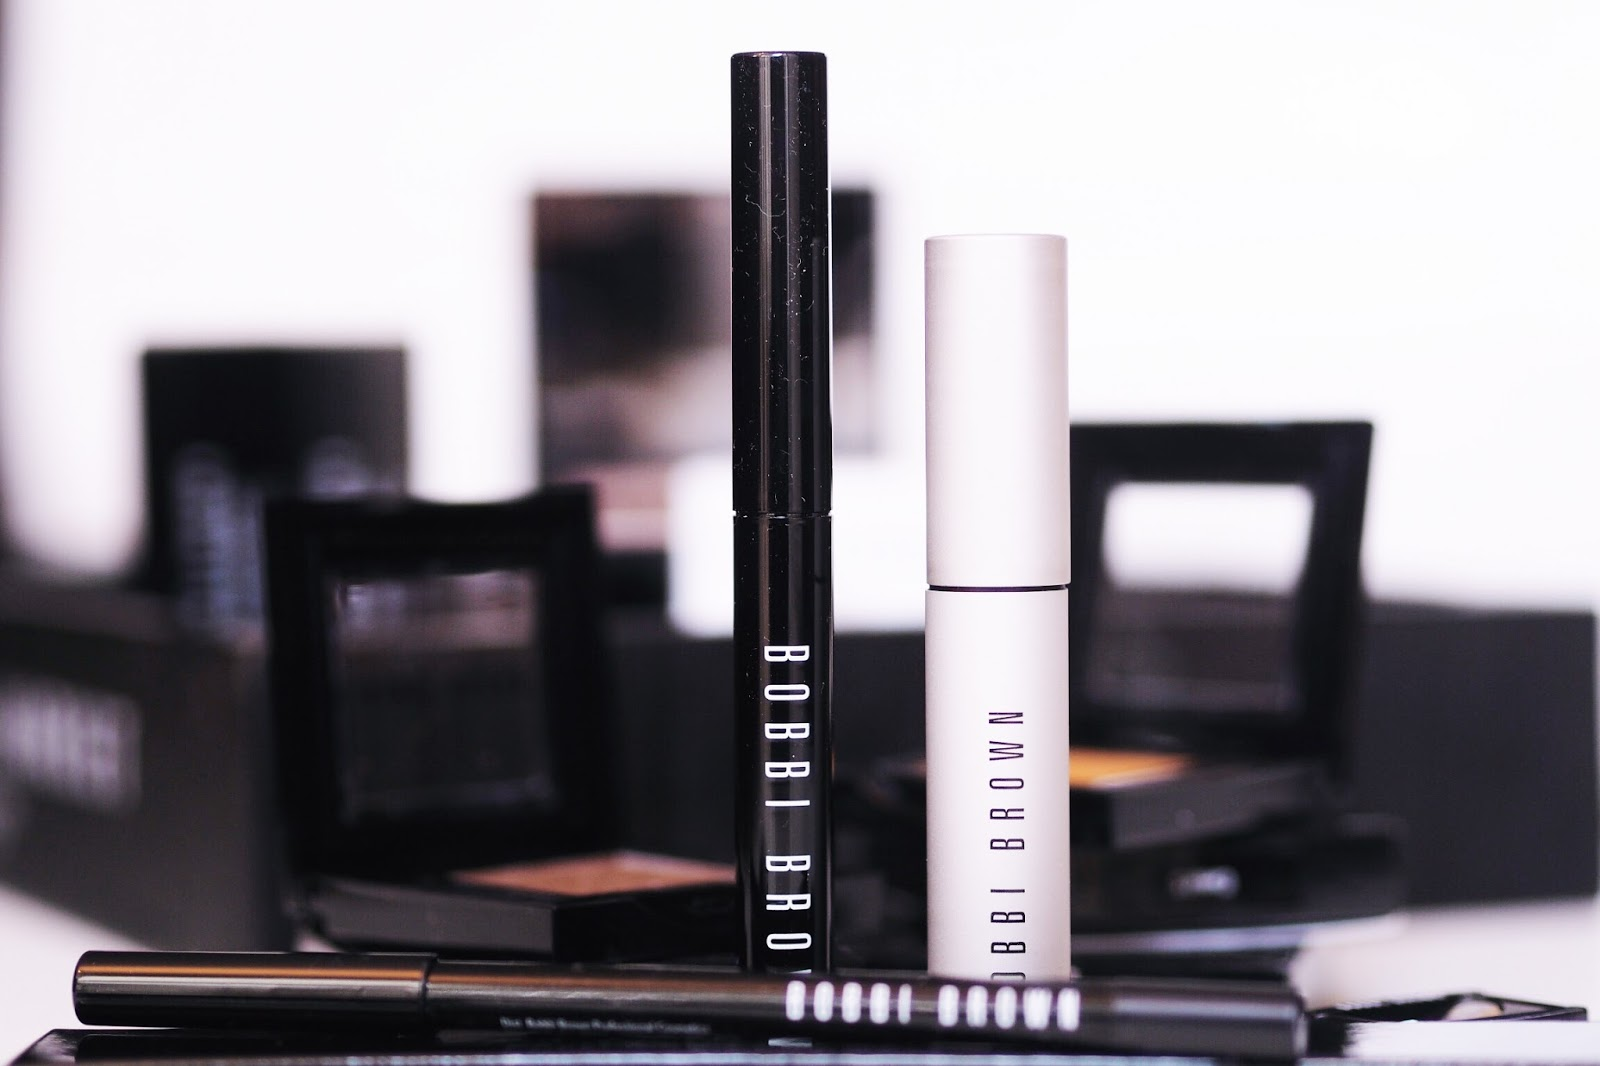 Bobbi Brown PRO studio soho masterclass makeup foundation stick review